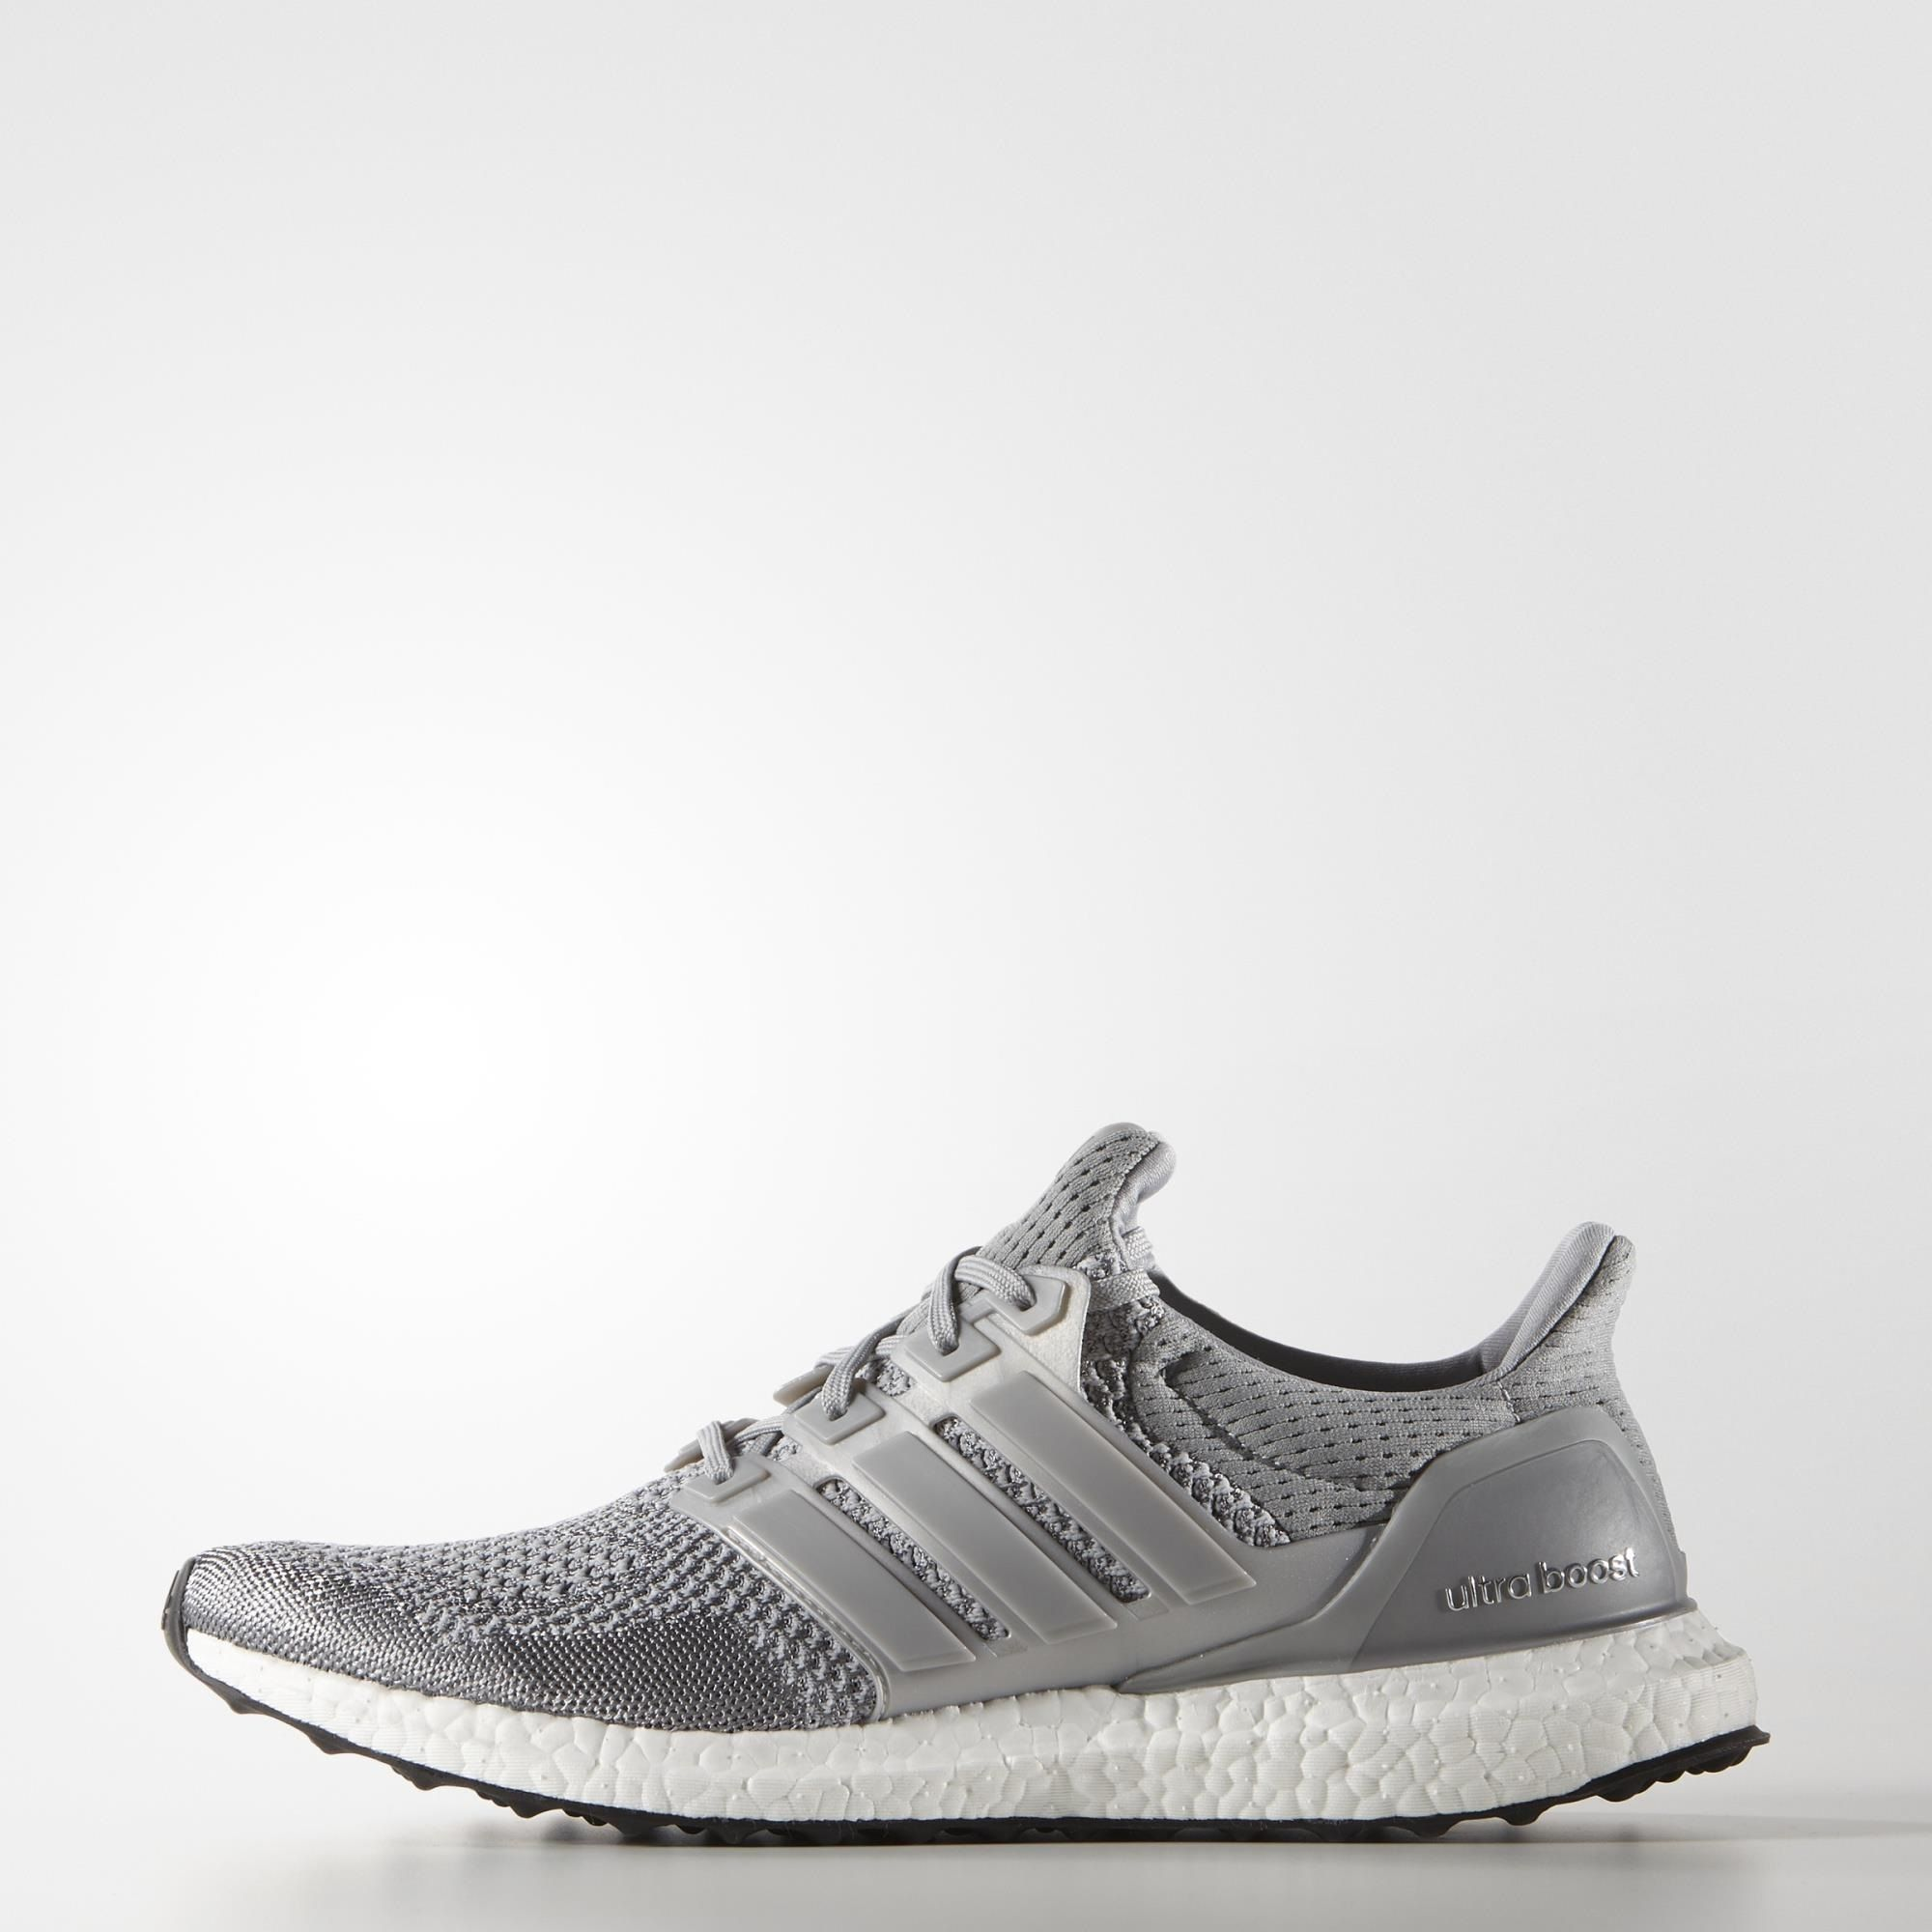 Adidas Ultra Boost White Nz